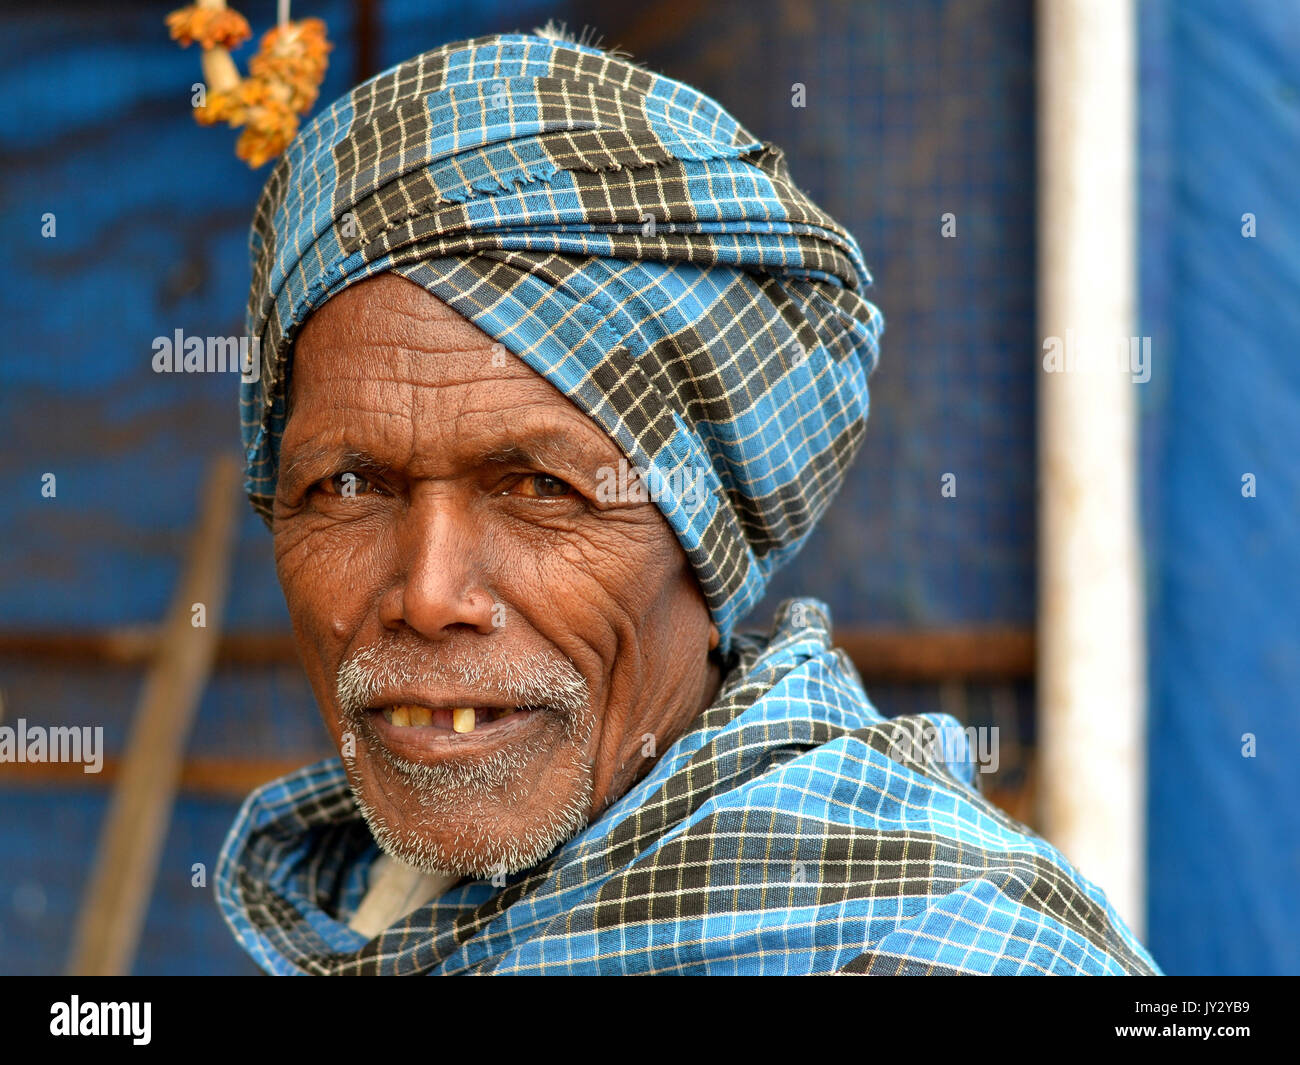 Closeup street portrait of an old Indian Adivasi man, wearing a blue-checkered turban. - Stock Image